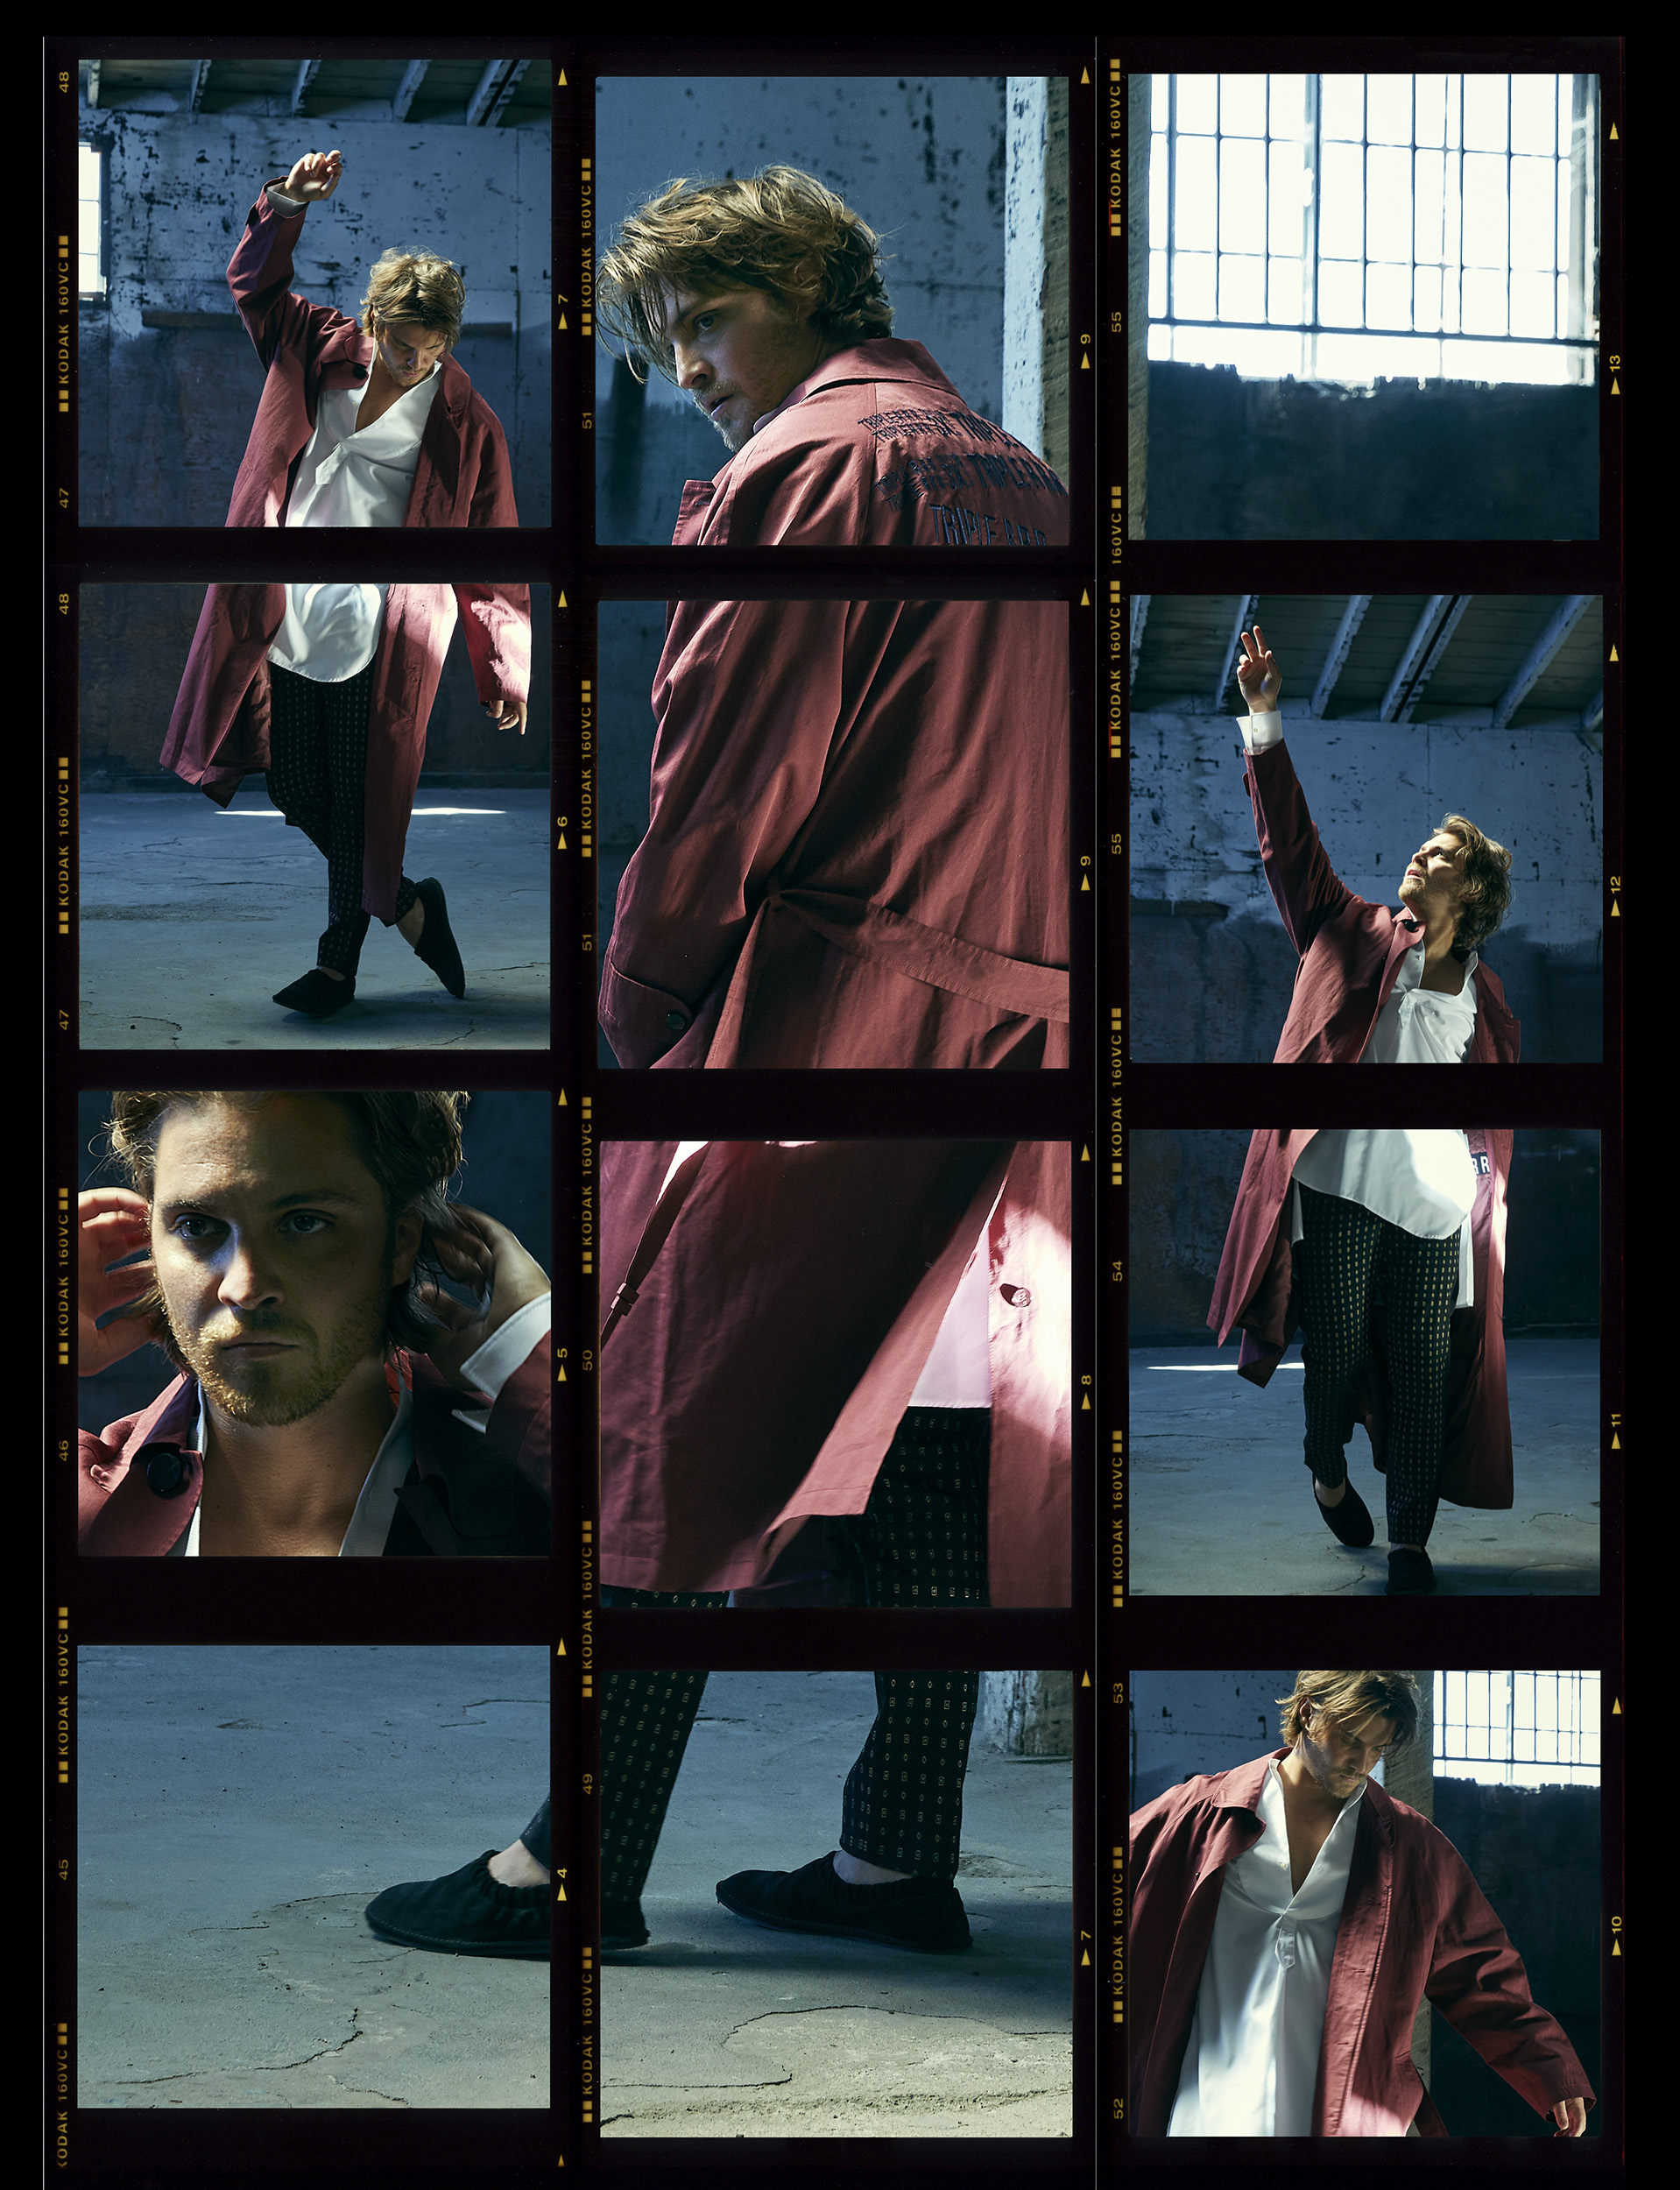 Contact_Sheet_01_LukeGrimes